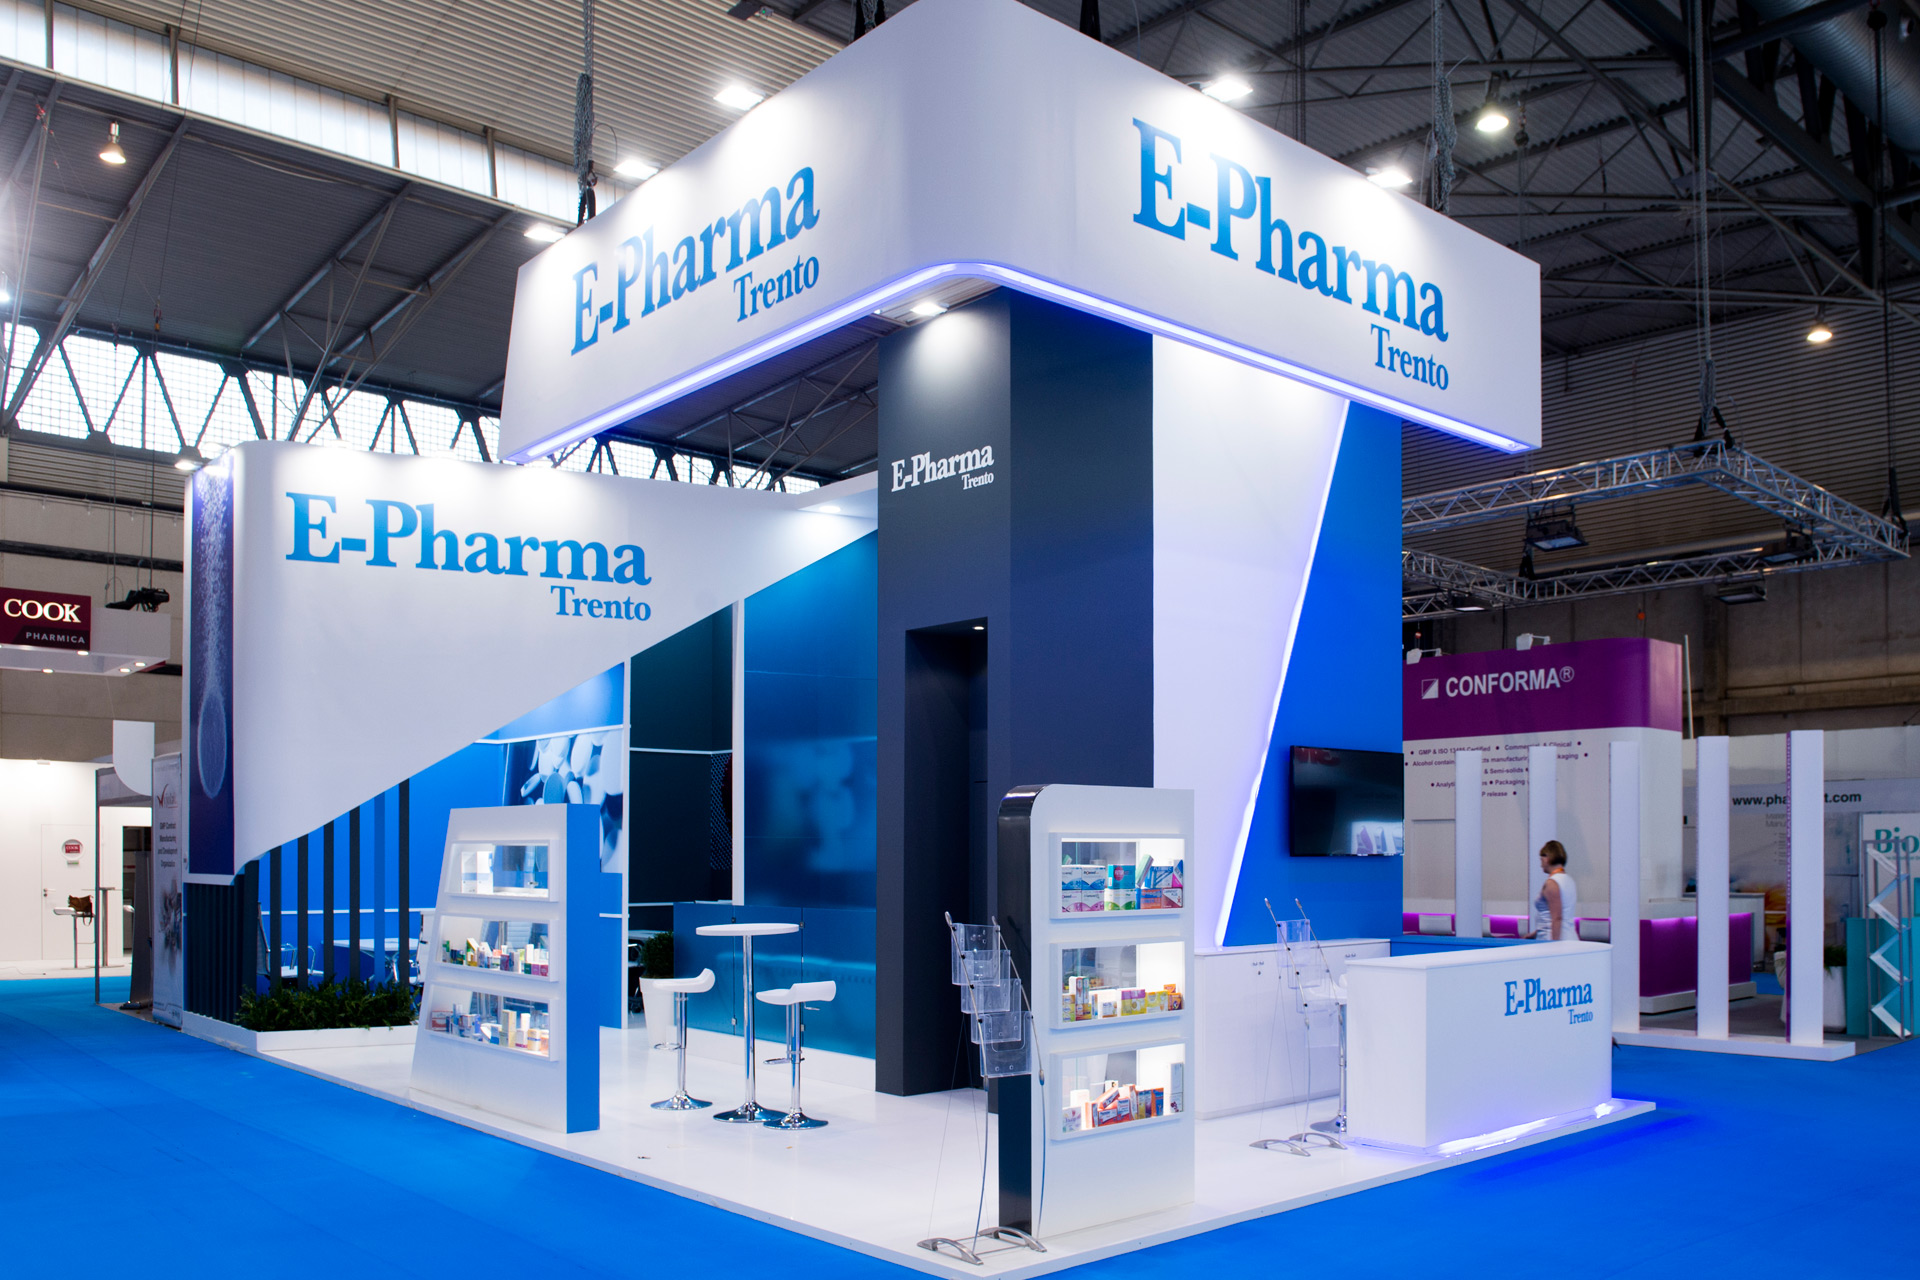 Expo Exhibition Stands Questions : Epharma cphi barcelona pro expo exhibition stand